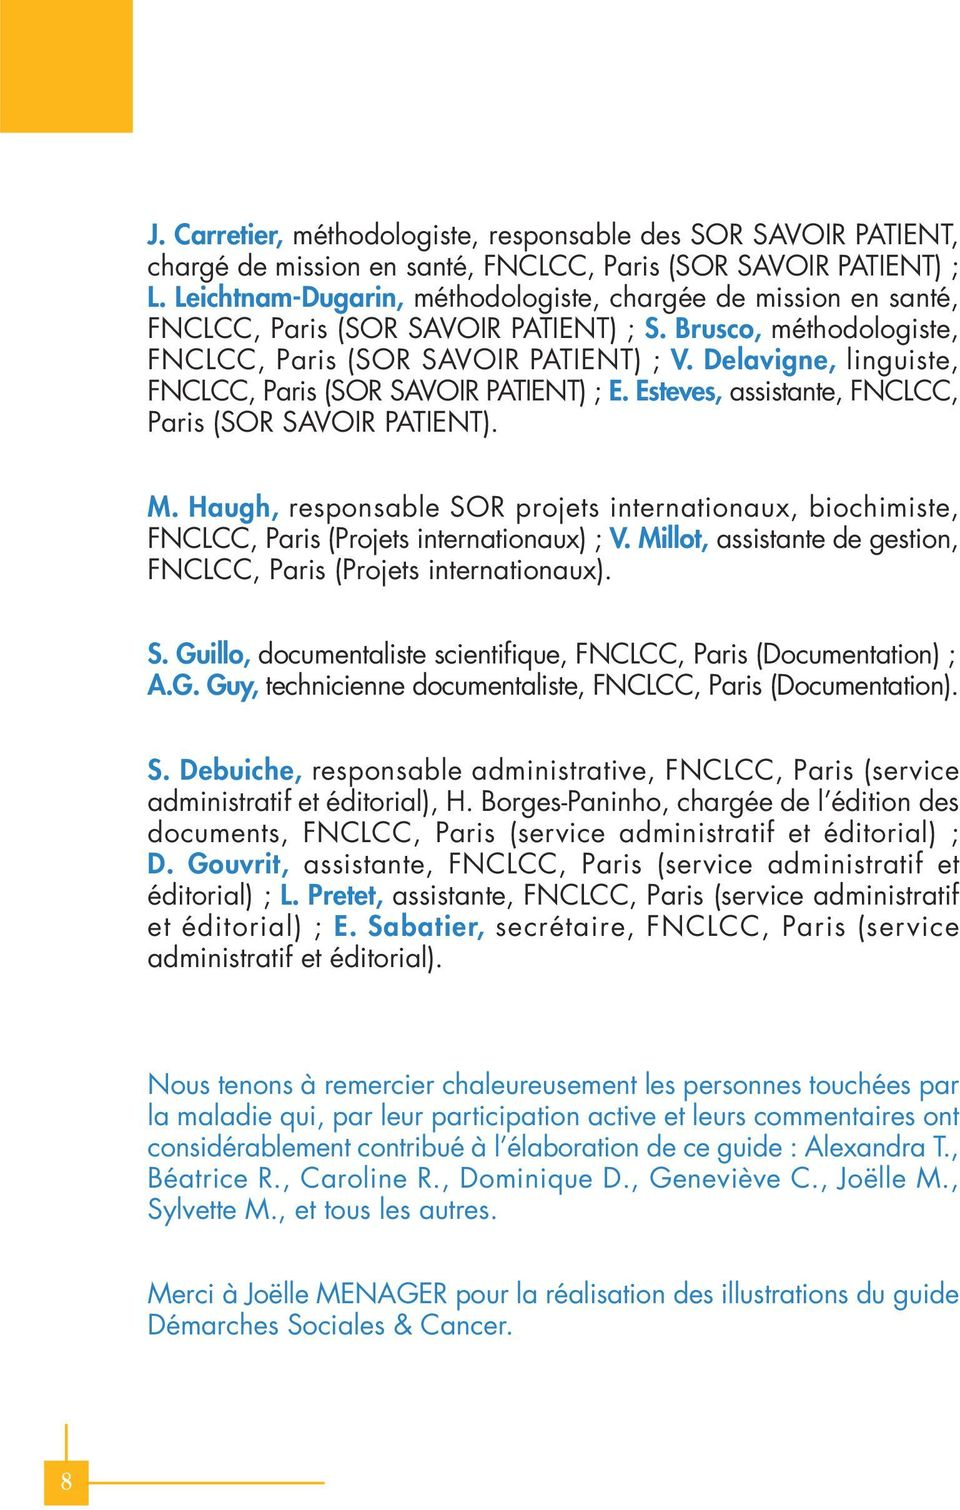 Delavigne, linguiste, FNCLCC, Paris (SOR SAVOIR PATIENT) ; E. Esteves, assistante, FNCLCC, Paris (SOR SAVOIR PATIENT). M.